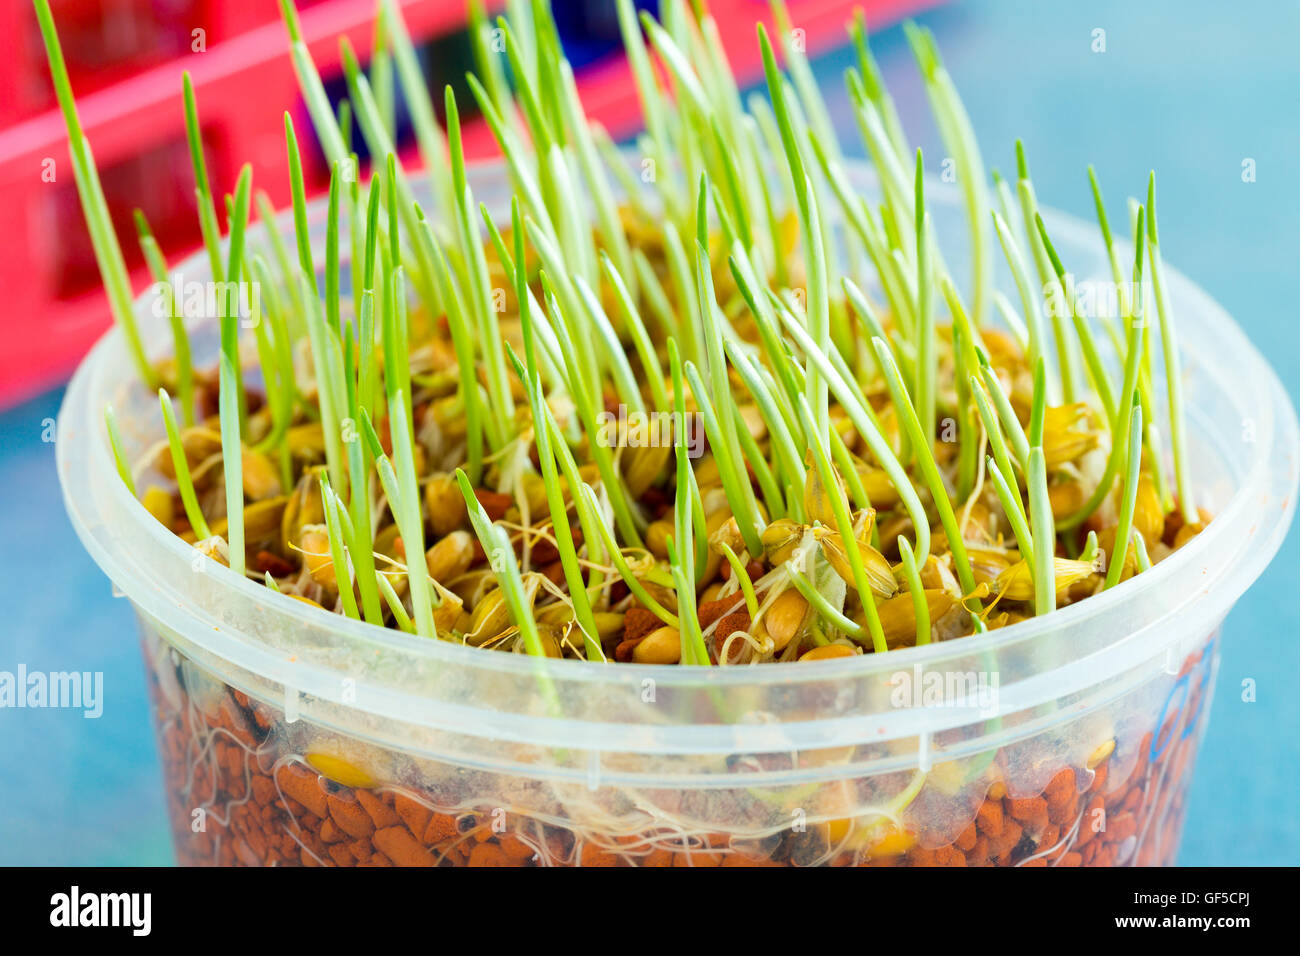 sprout of genetically modified wheat - Stock Image